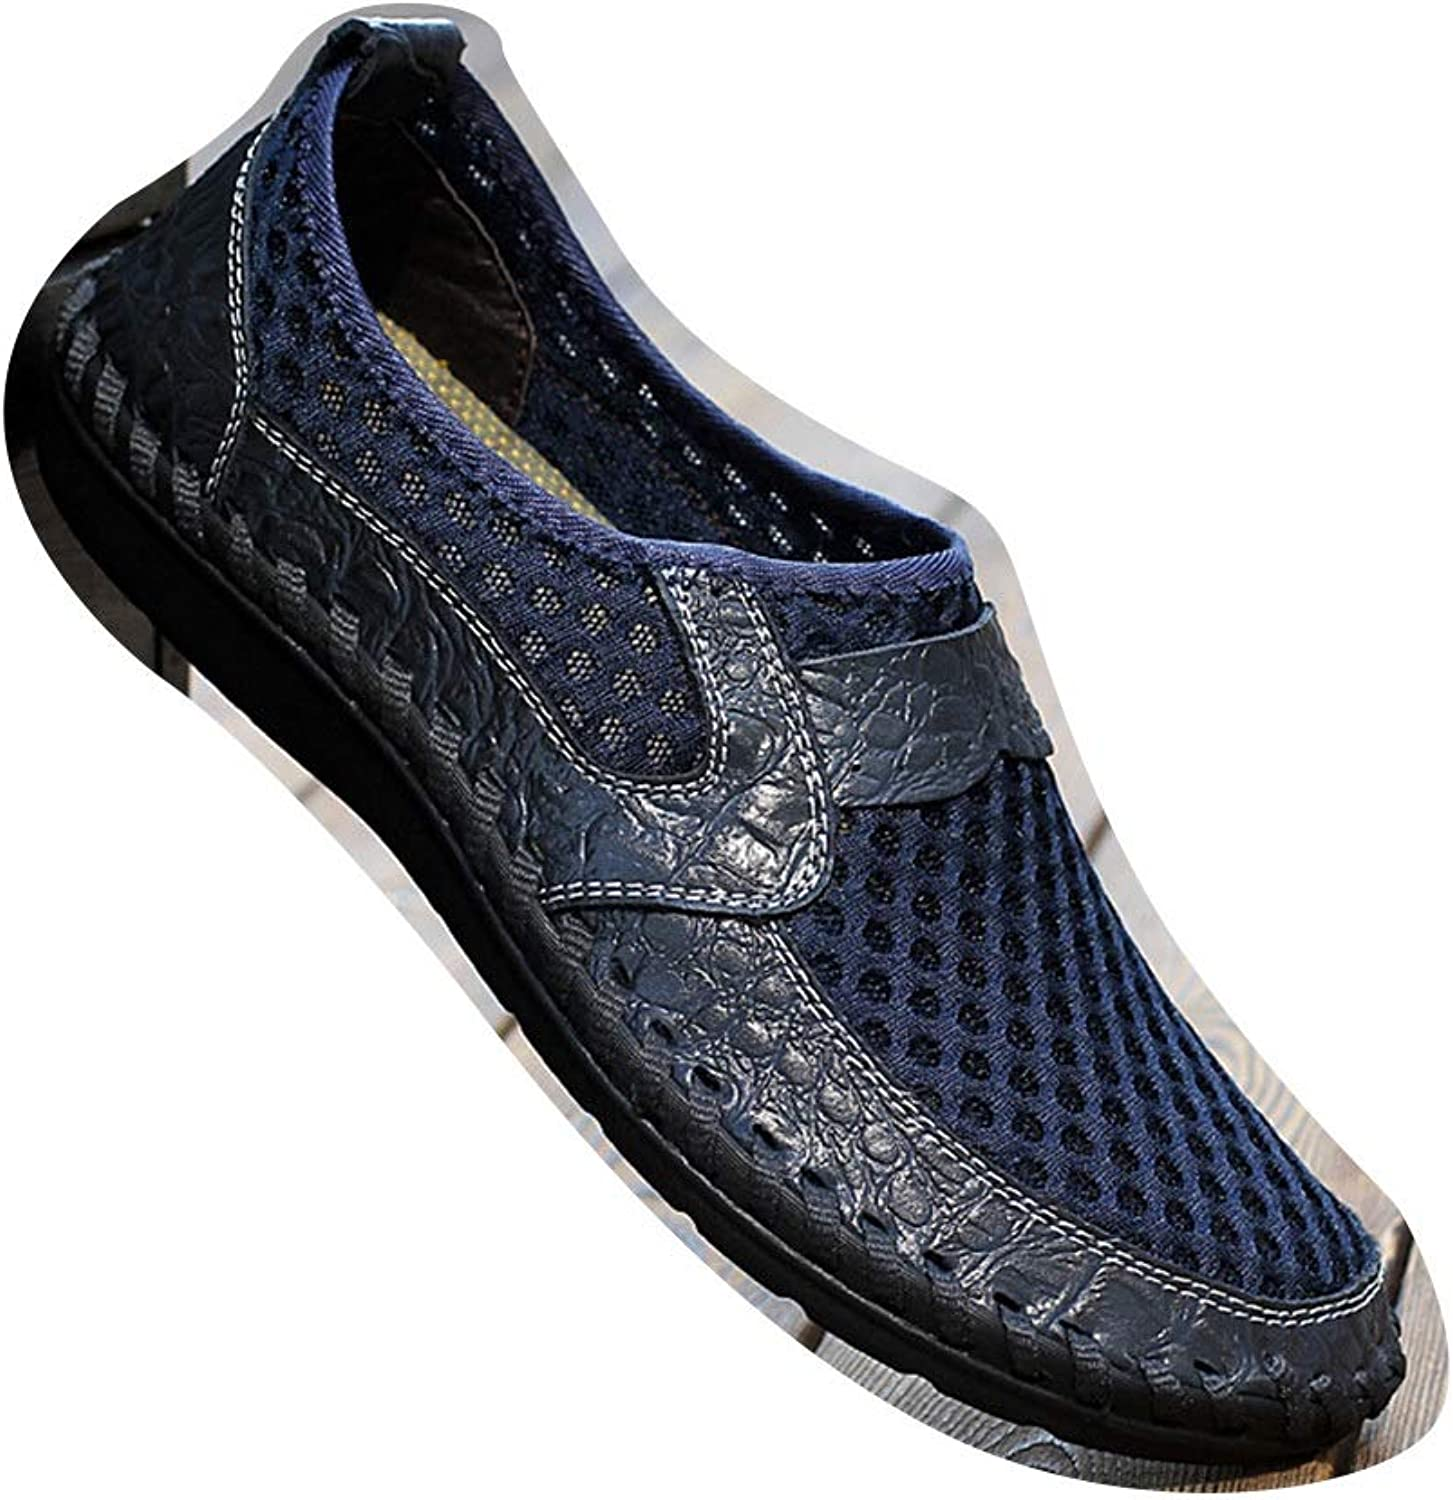 Easy Go Shopping Men's shoes, Breathable Sports shoes, Men's Leather Mesh shoes, Cricket shoes (color   bluee, Size   42)